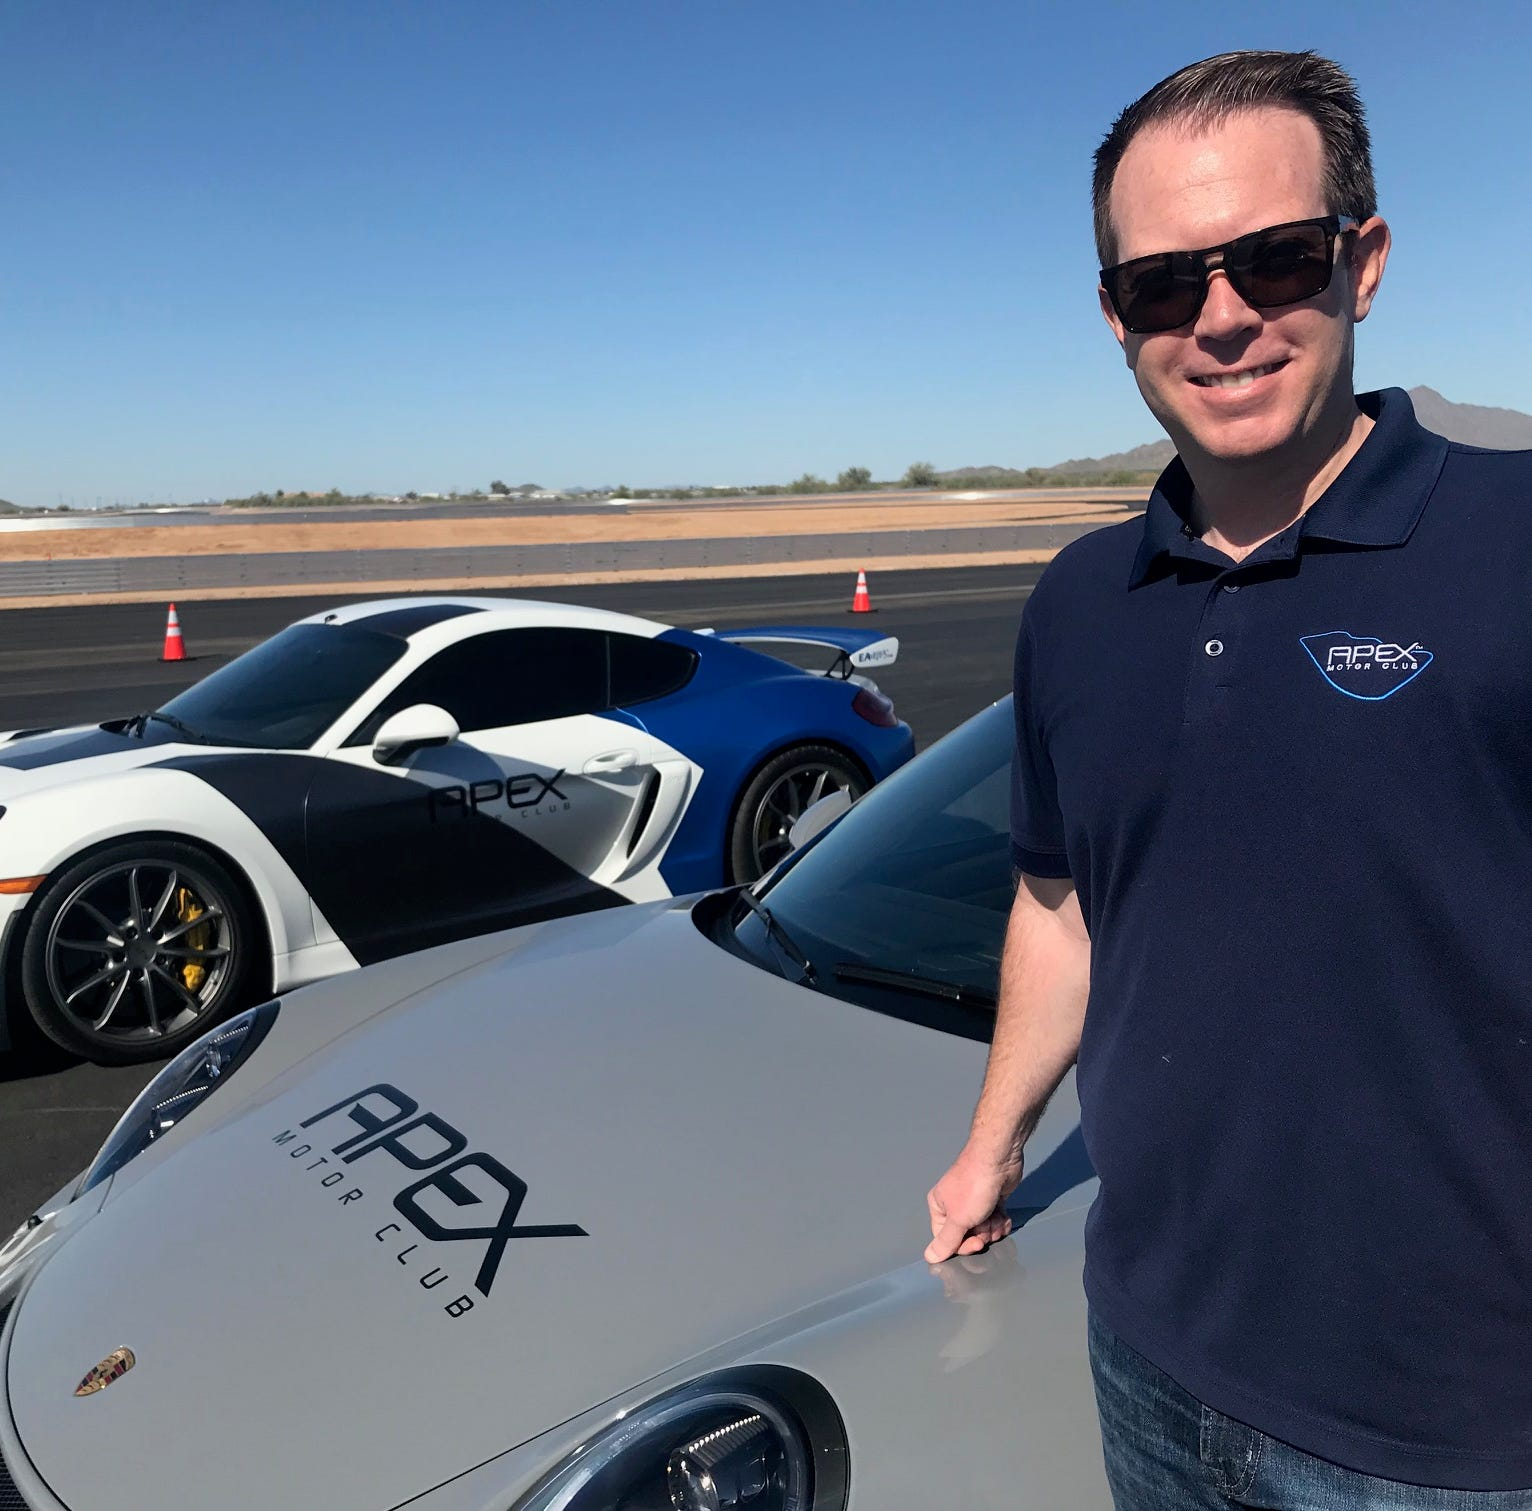 Arizona 'country club' for high-performance cars has a track with no speed limit